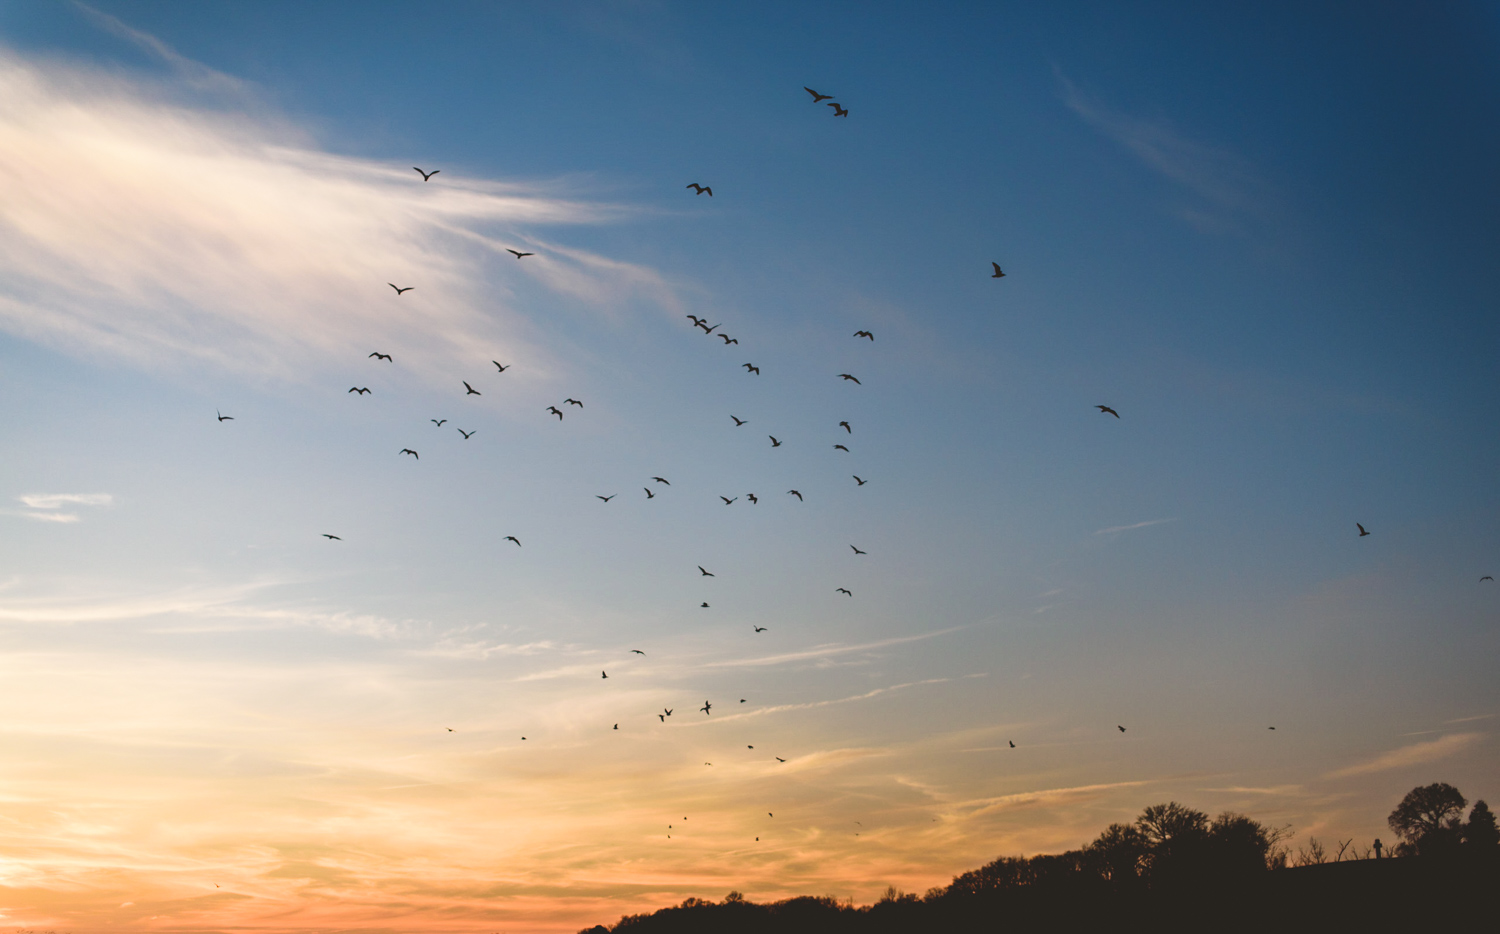 010 - birds flying above the james river in richmond wedding photographer nathan mitchell.jpg